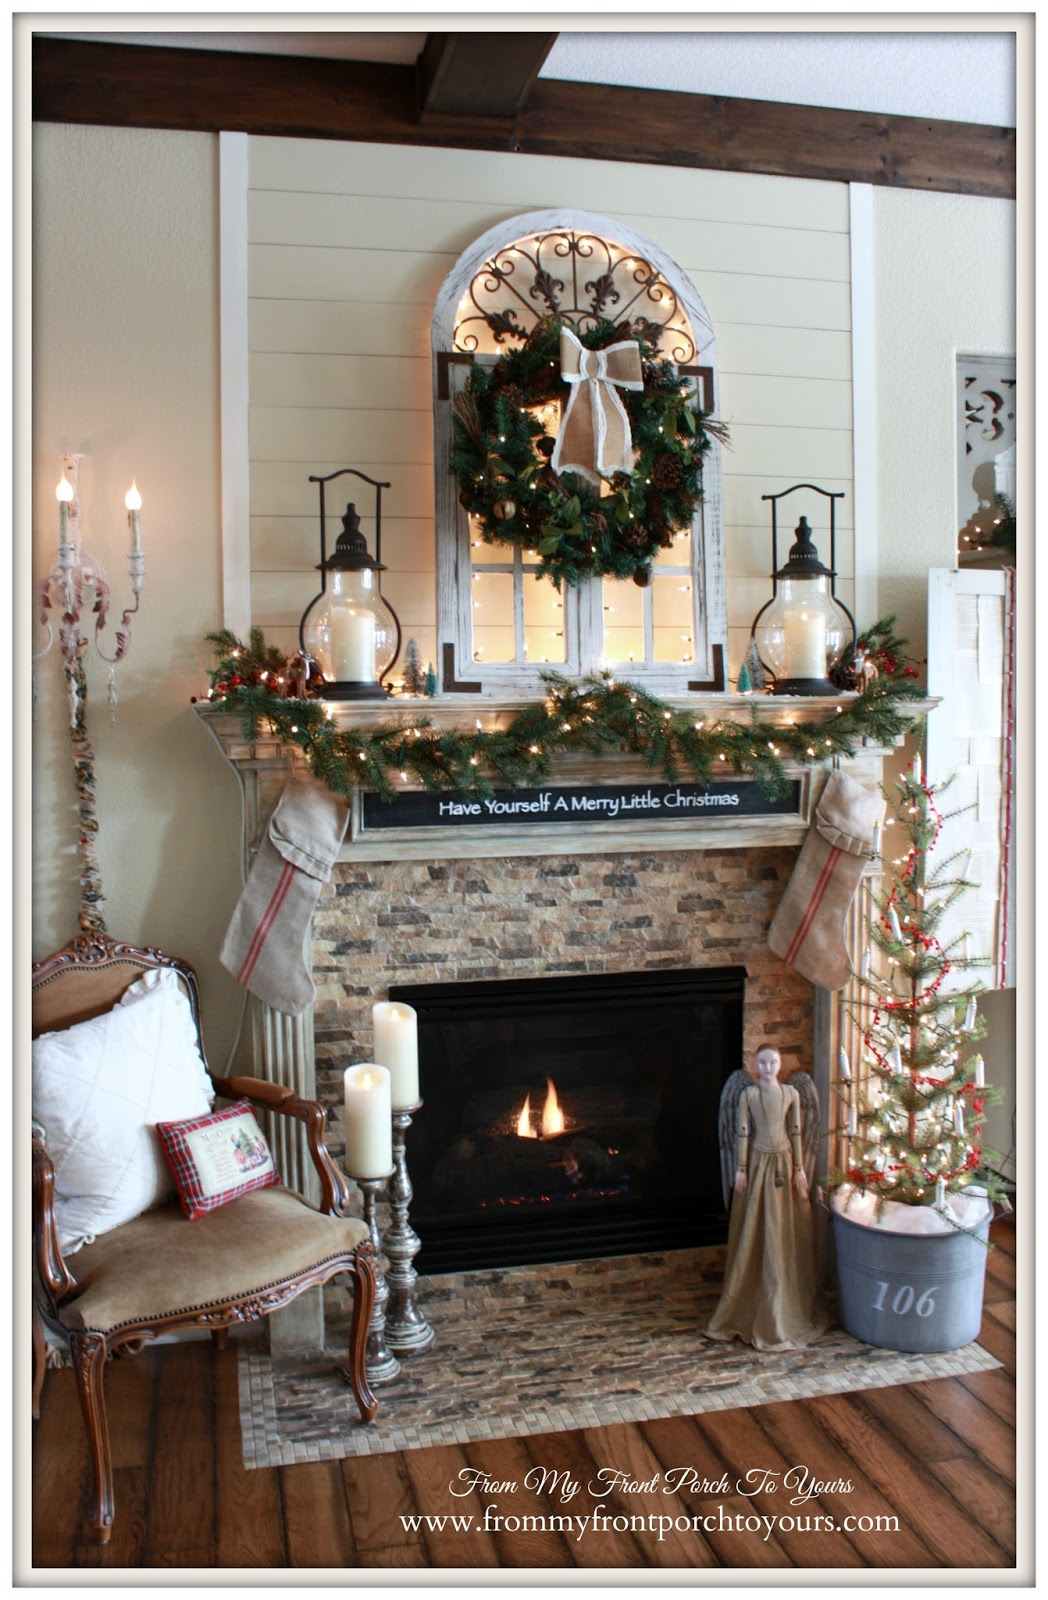 Rustic Farmhouse French Country Christmas Mantel 2015 From My Front Porch To